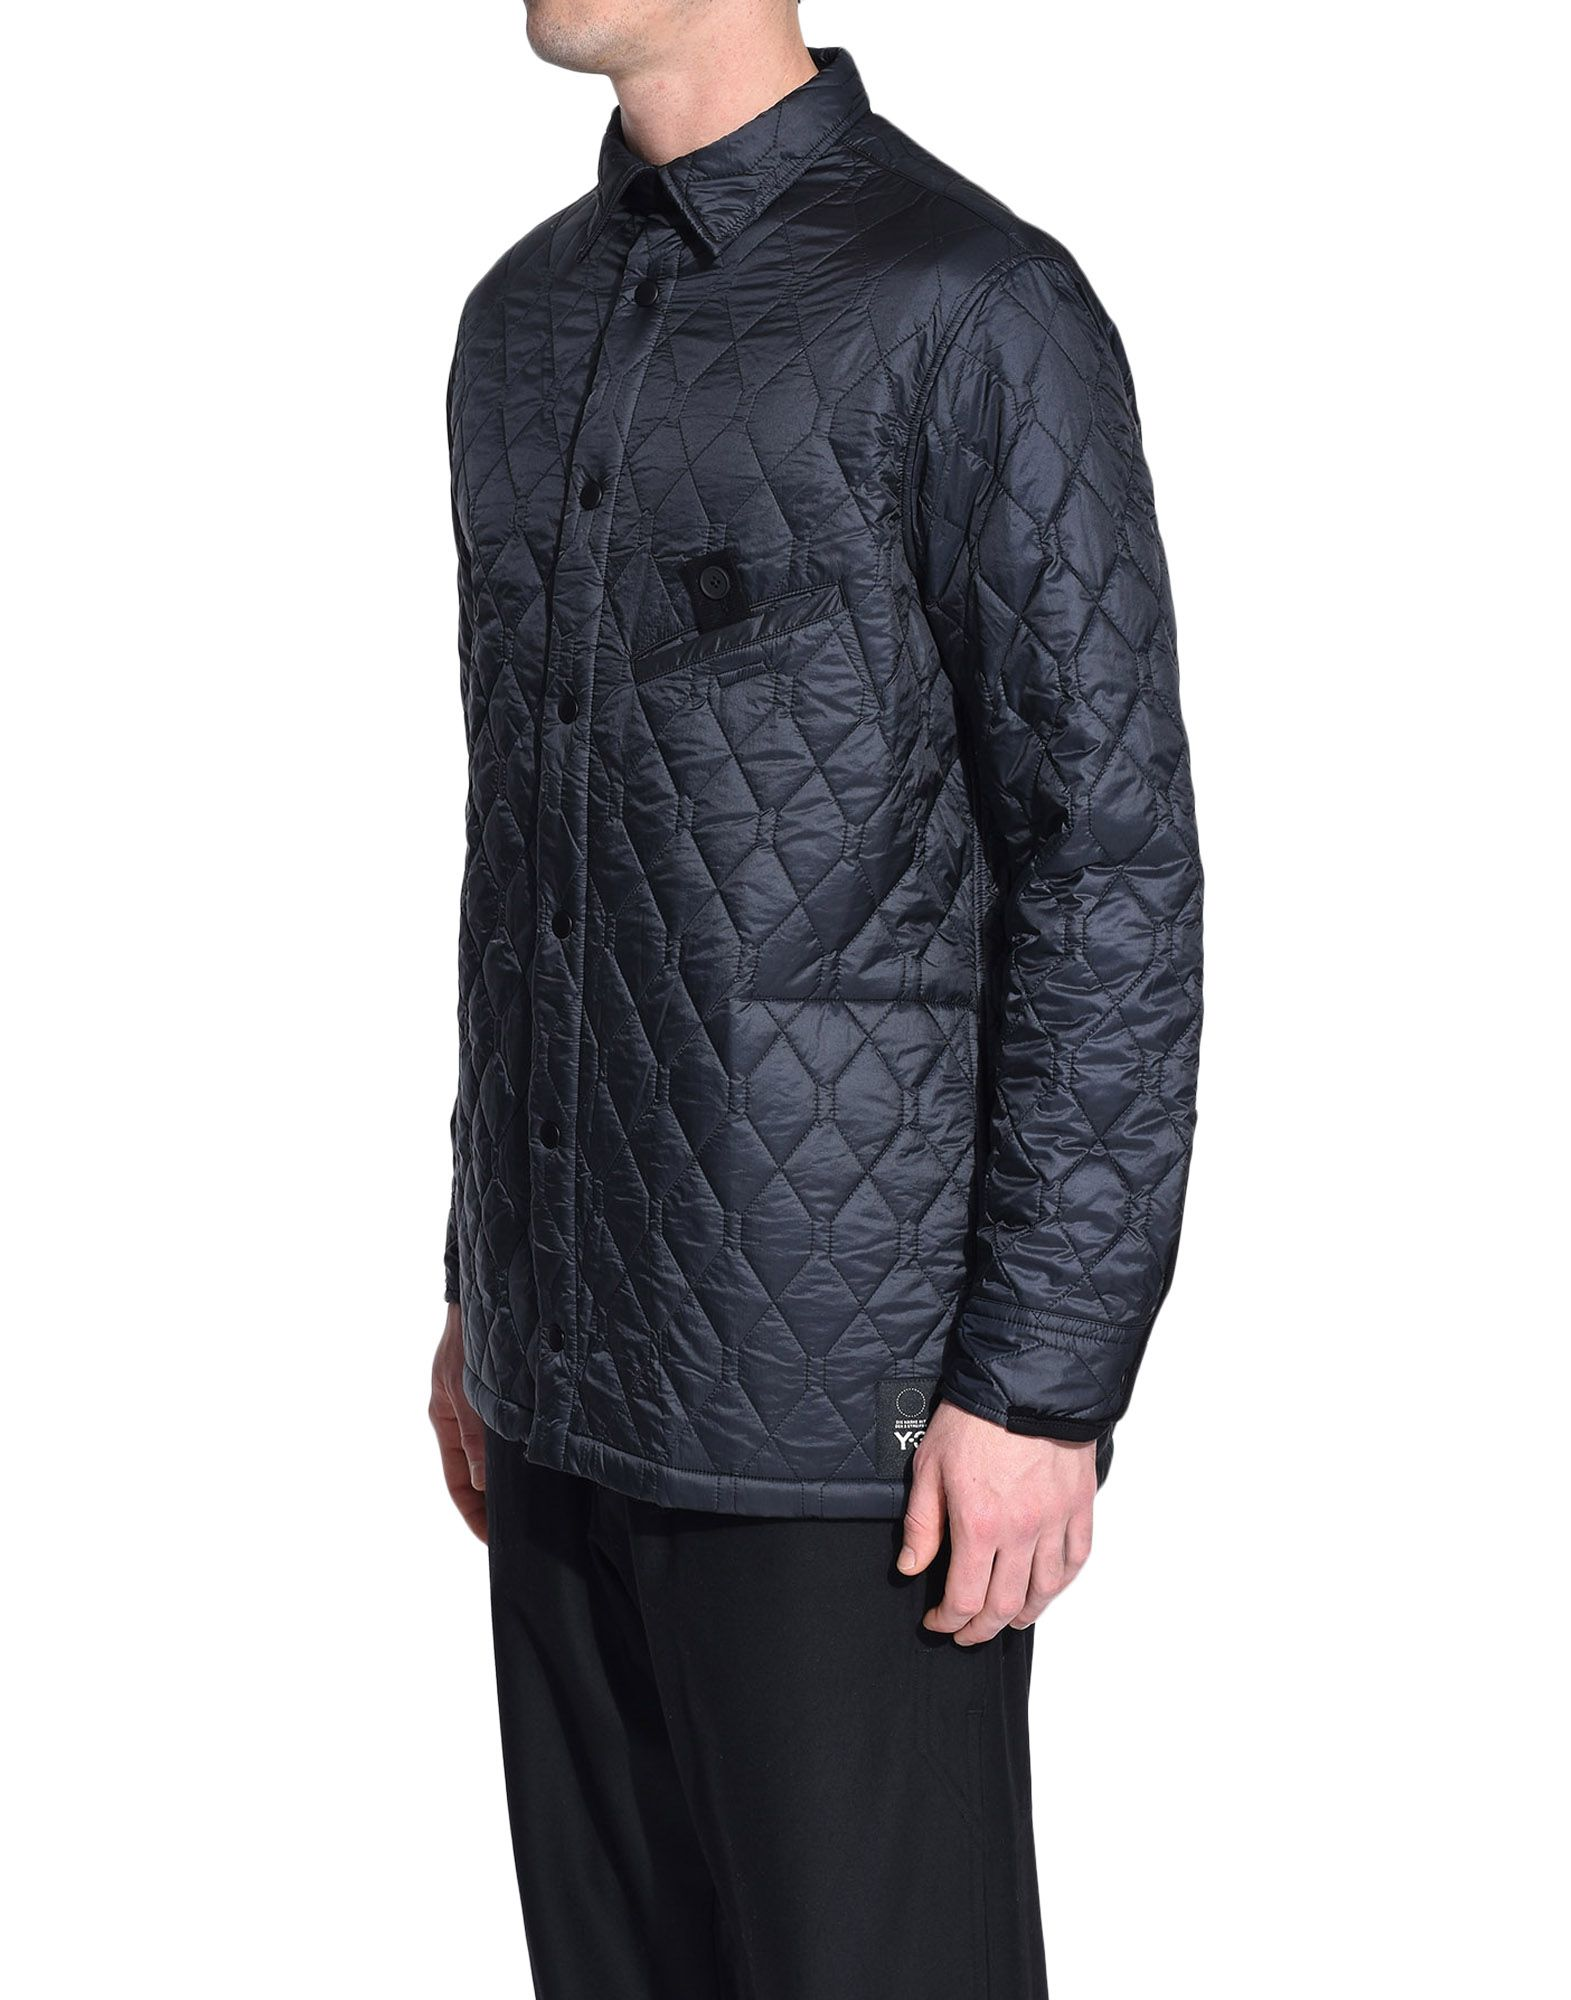 Y-3 Y-3 Quilted Shirt Long sleeve shirt Man e